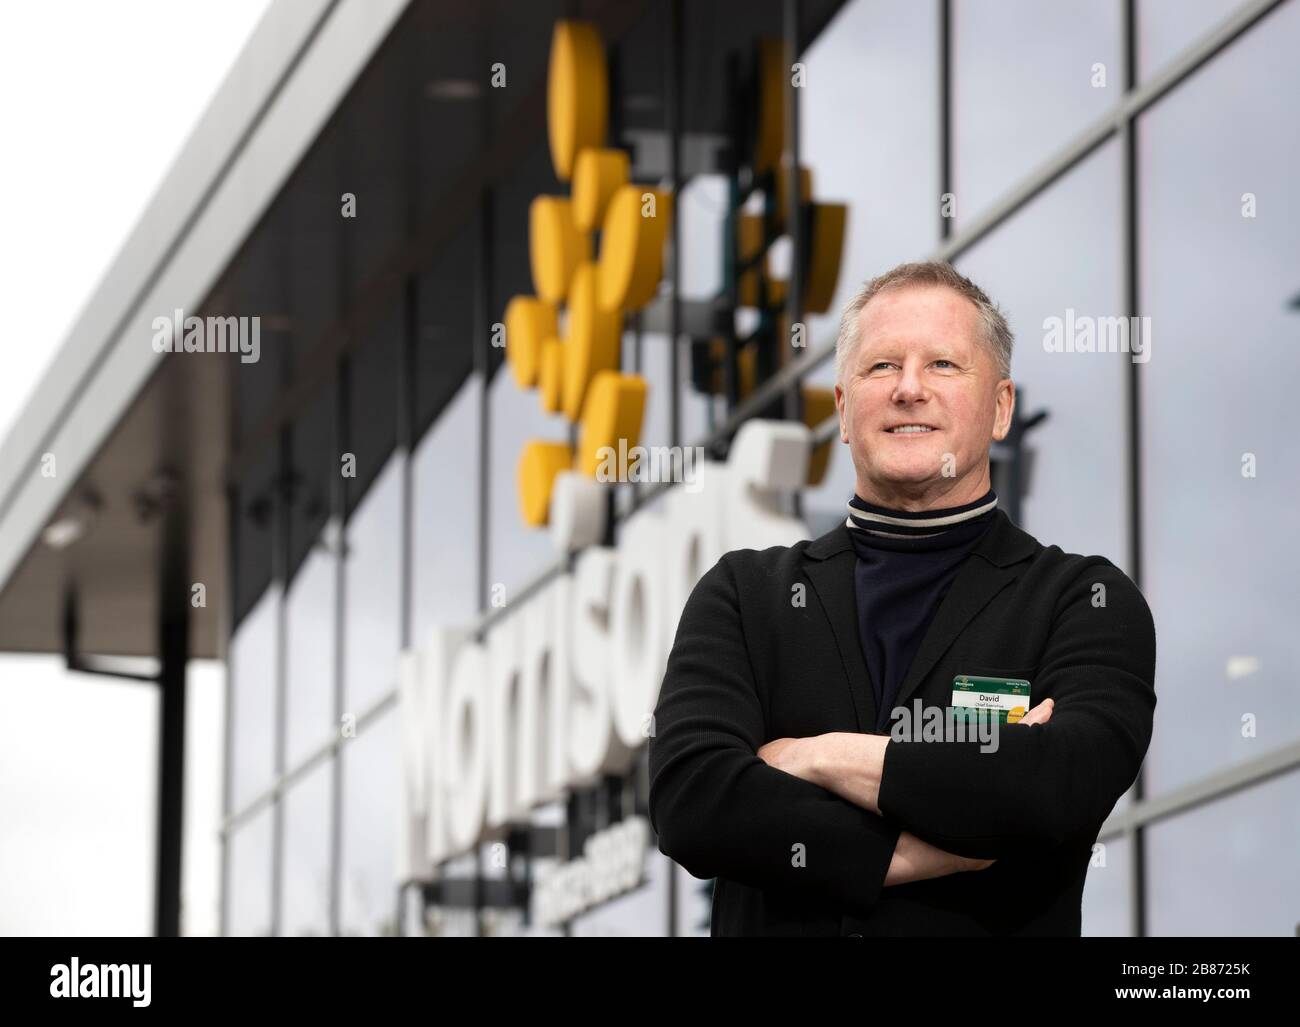 Morrisons CEO David Potts at the Morrisons St Ives Store in Cambridgeshire. Stock Photo